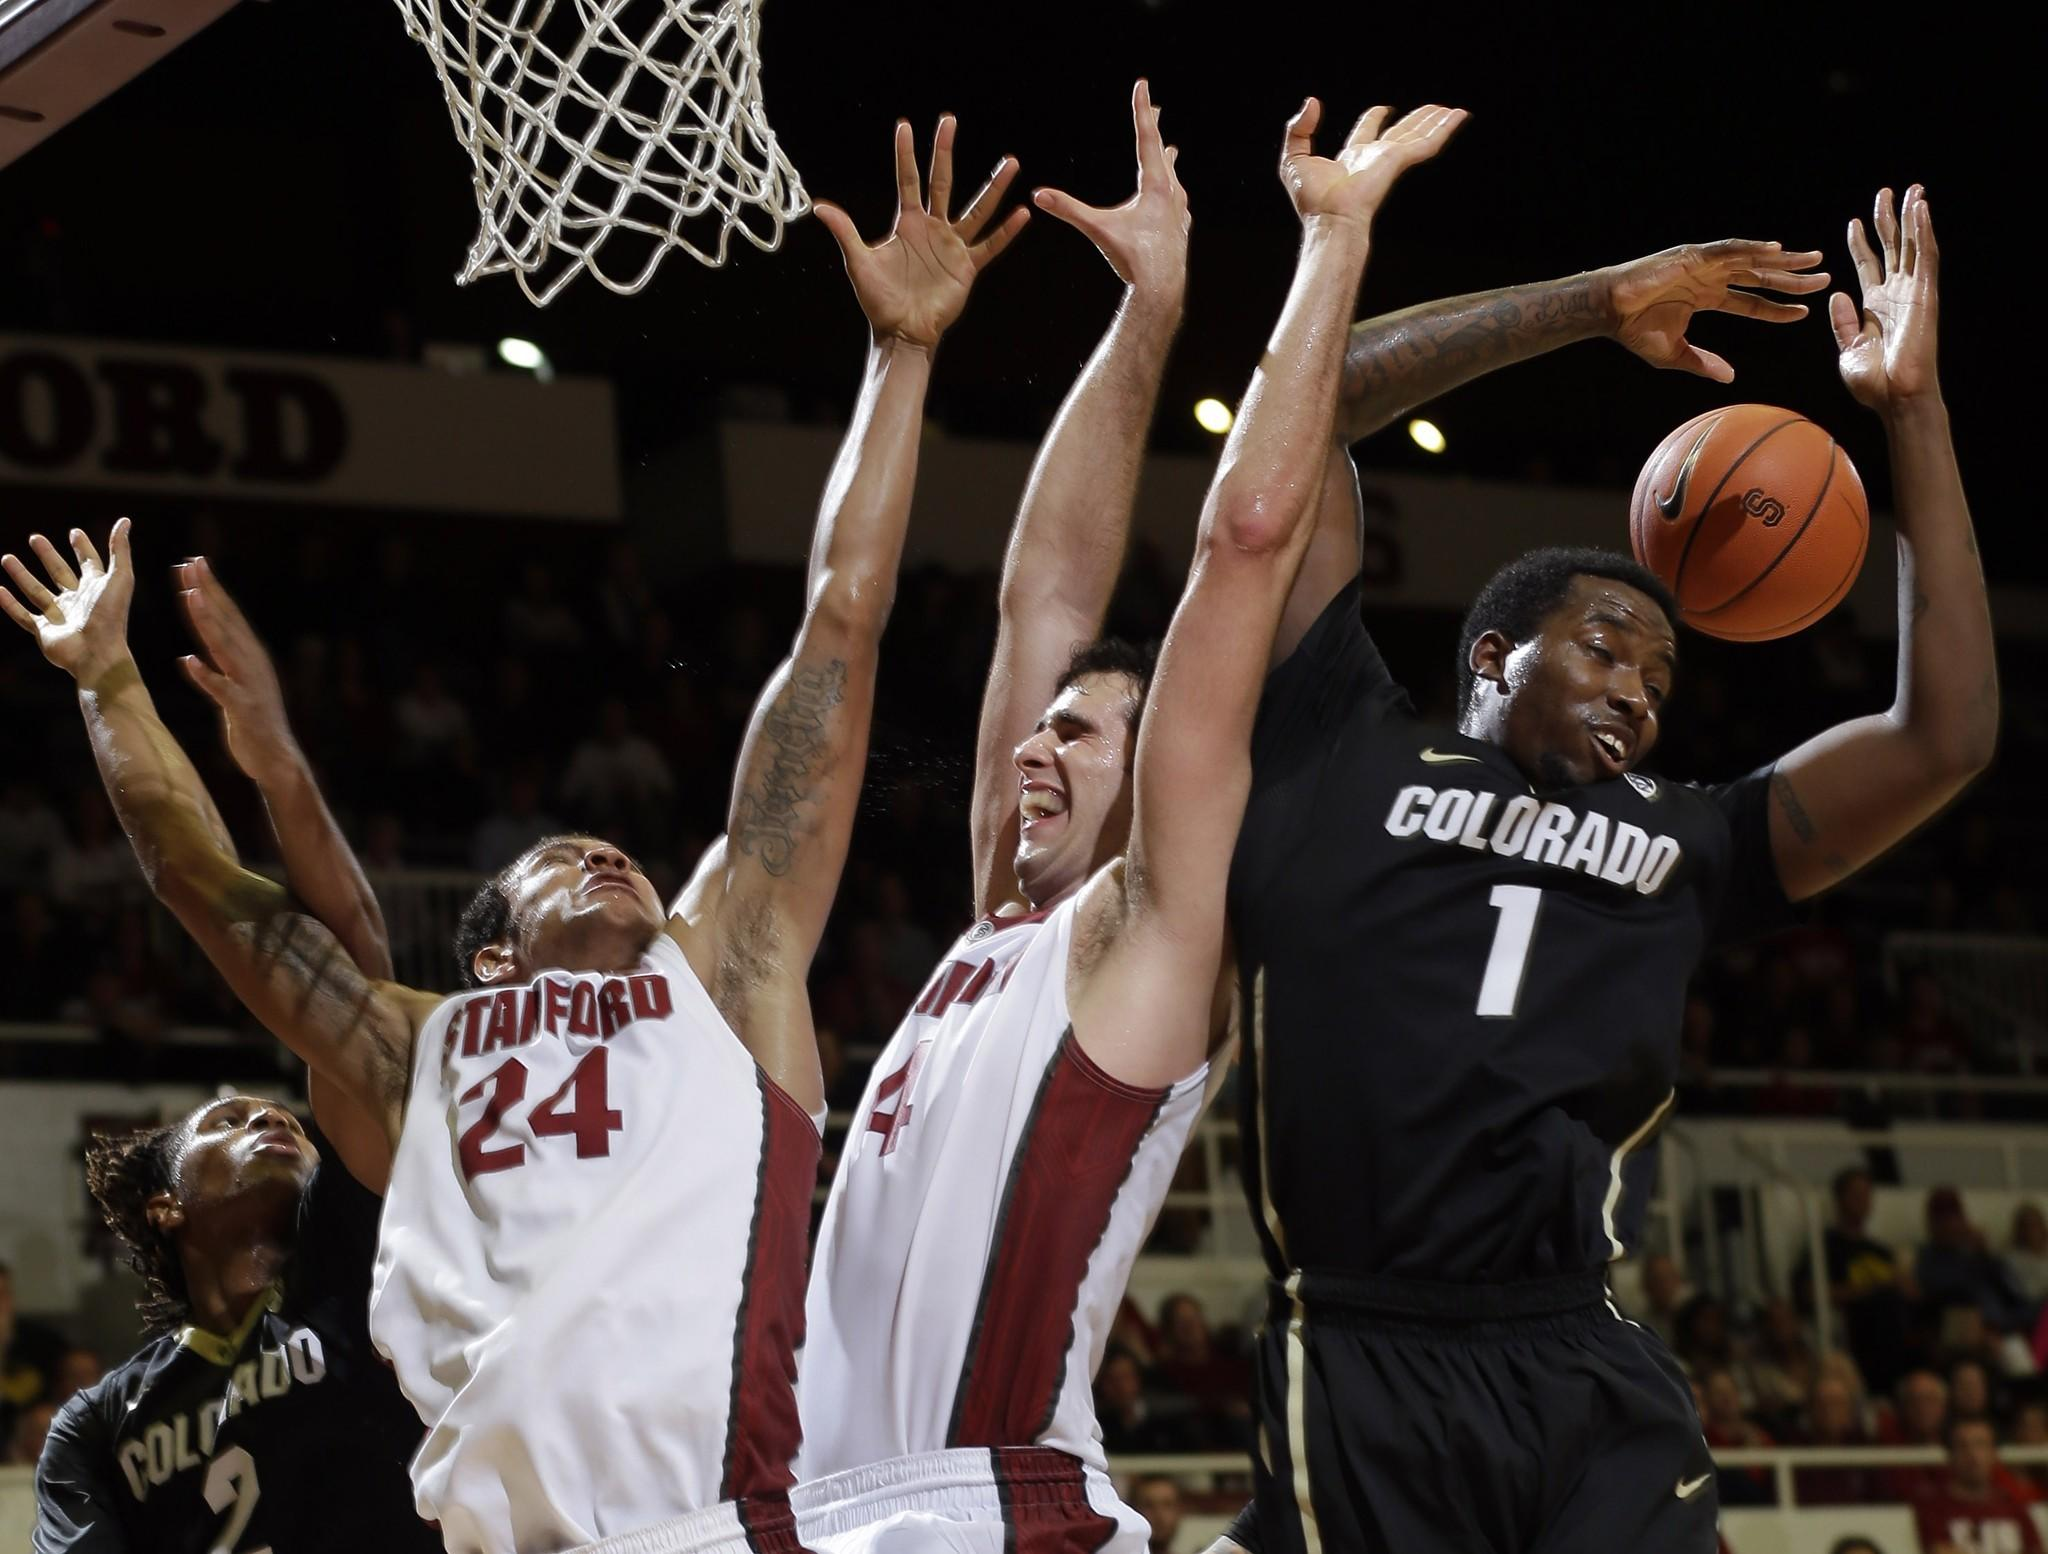 Colorado's Wesley Gordon, right, reaches for a rebound near teammate Xavier Johnson (2) and Stanford's Josh Huestis (24) and Stefan Nastic (4).